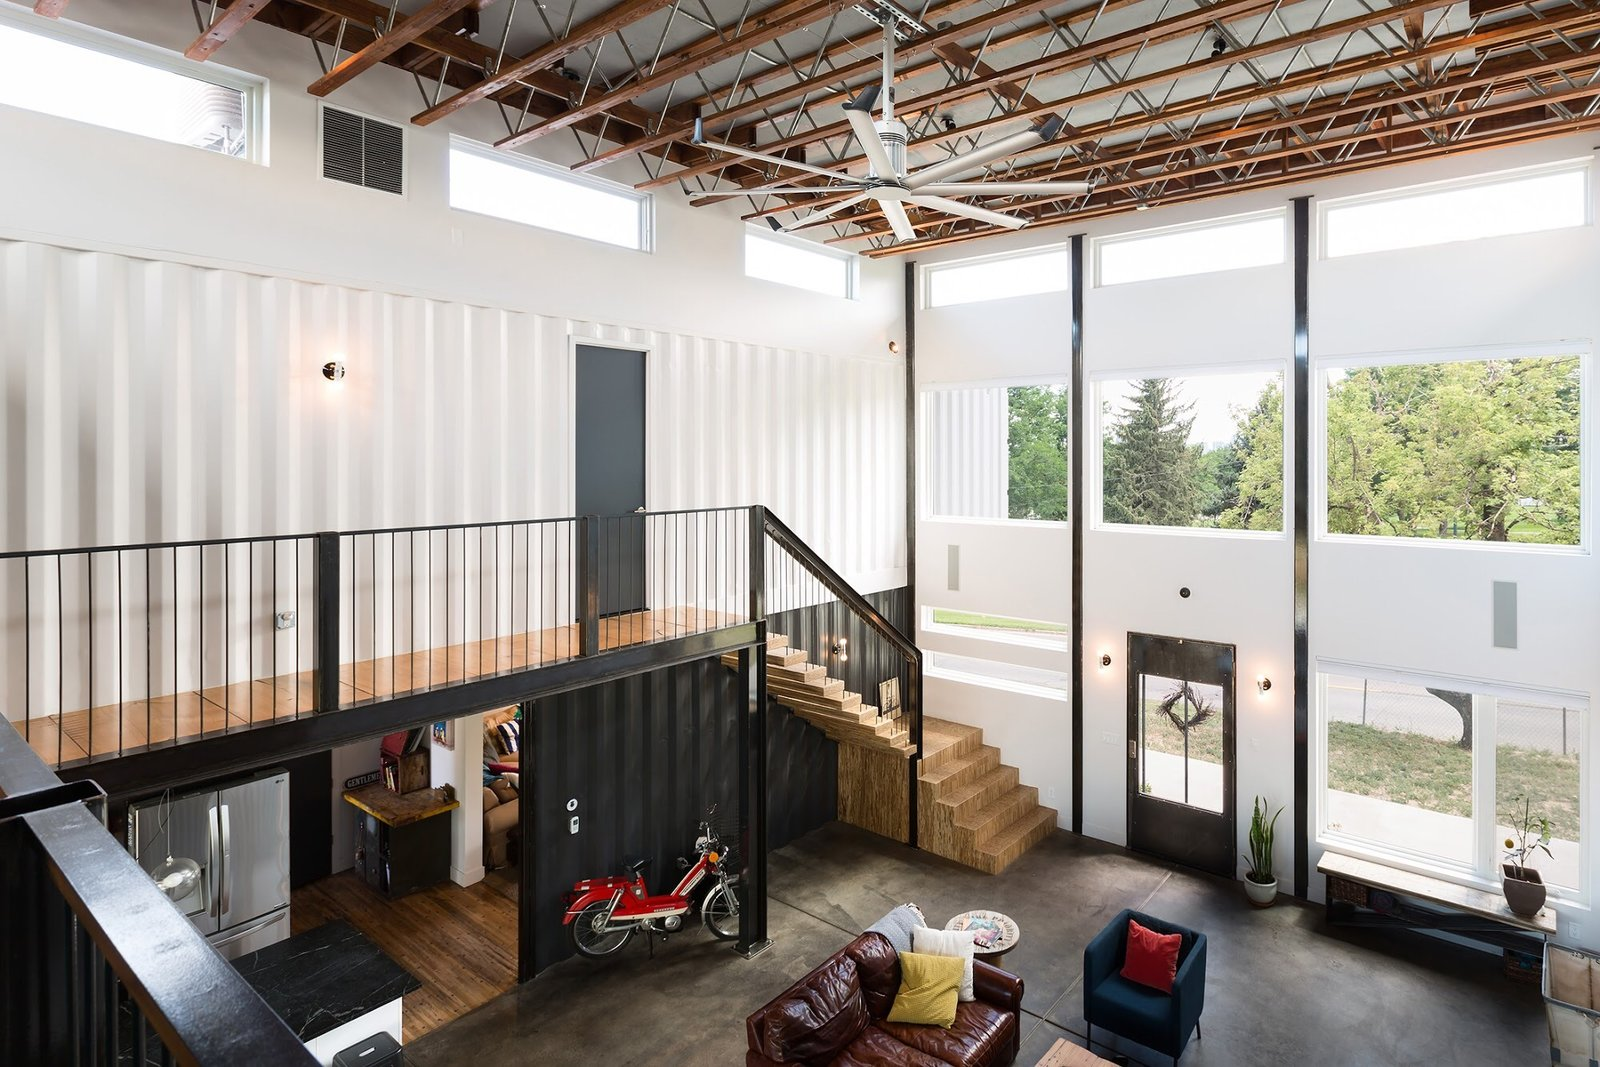 Chris Boylen Photography Tagged: Living Room, Chair, Bench, Sofa, End Tables, Ceiling Lighting, Floor Lighting, Table Lighting, and Medium Hardwood Floor.  The Container house by regan foster